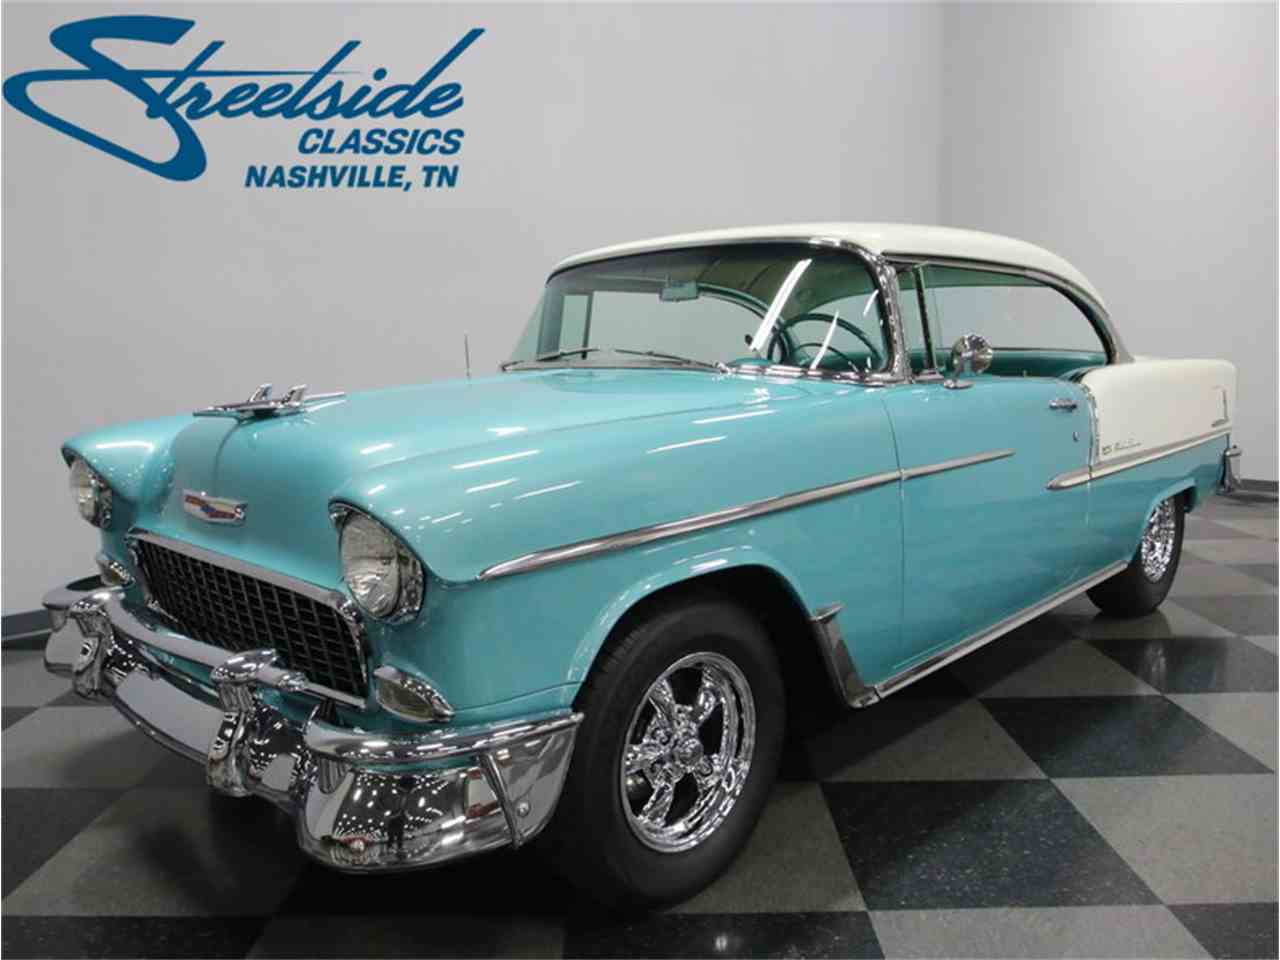 Chevrolet bel air hardtop for sale upcoming chevrolet - 1955 Chevrolet Bel Air For Sale Cc 1027477